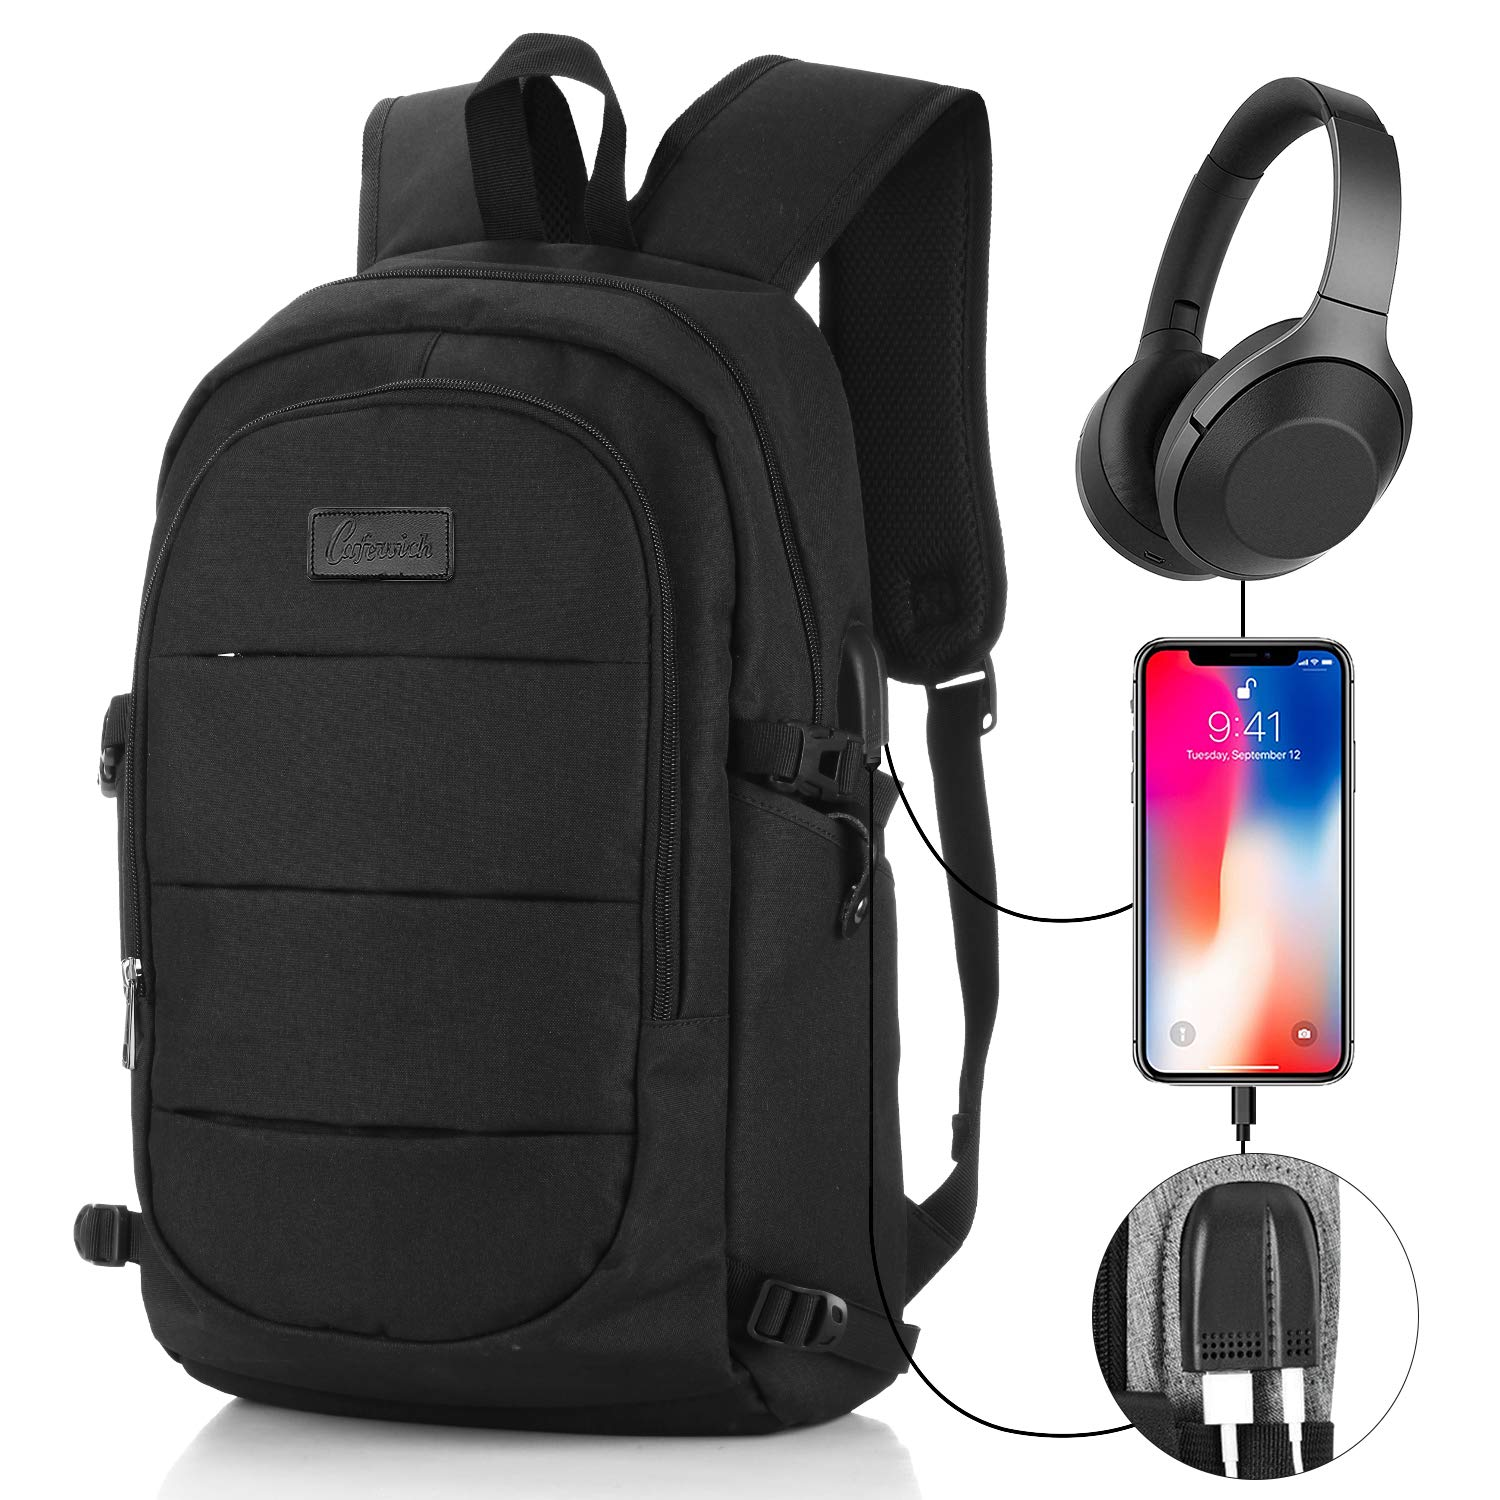 Travel Laptop Backpack for Man&Women Anti-Theft Business Computer Bag Waterproof Backpack with USB Charging Port & Headphone Interface for College Student,Fits Under 17'' Laptop by Cafewish (Black)